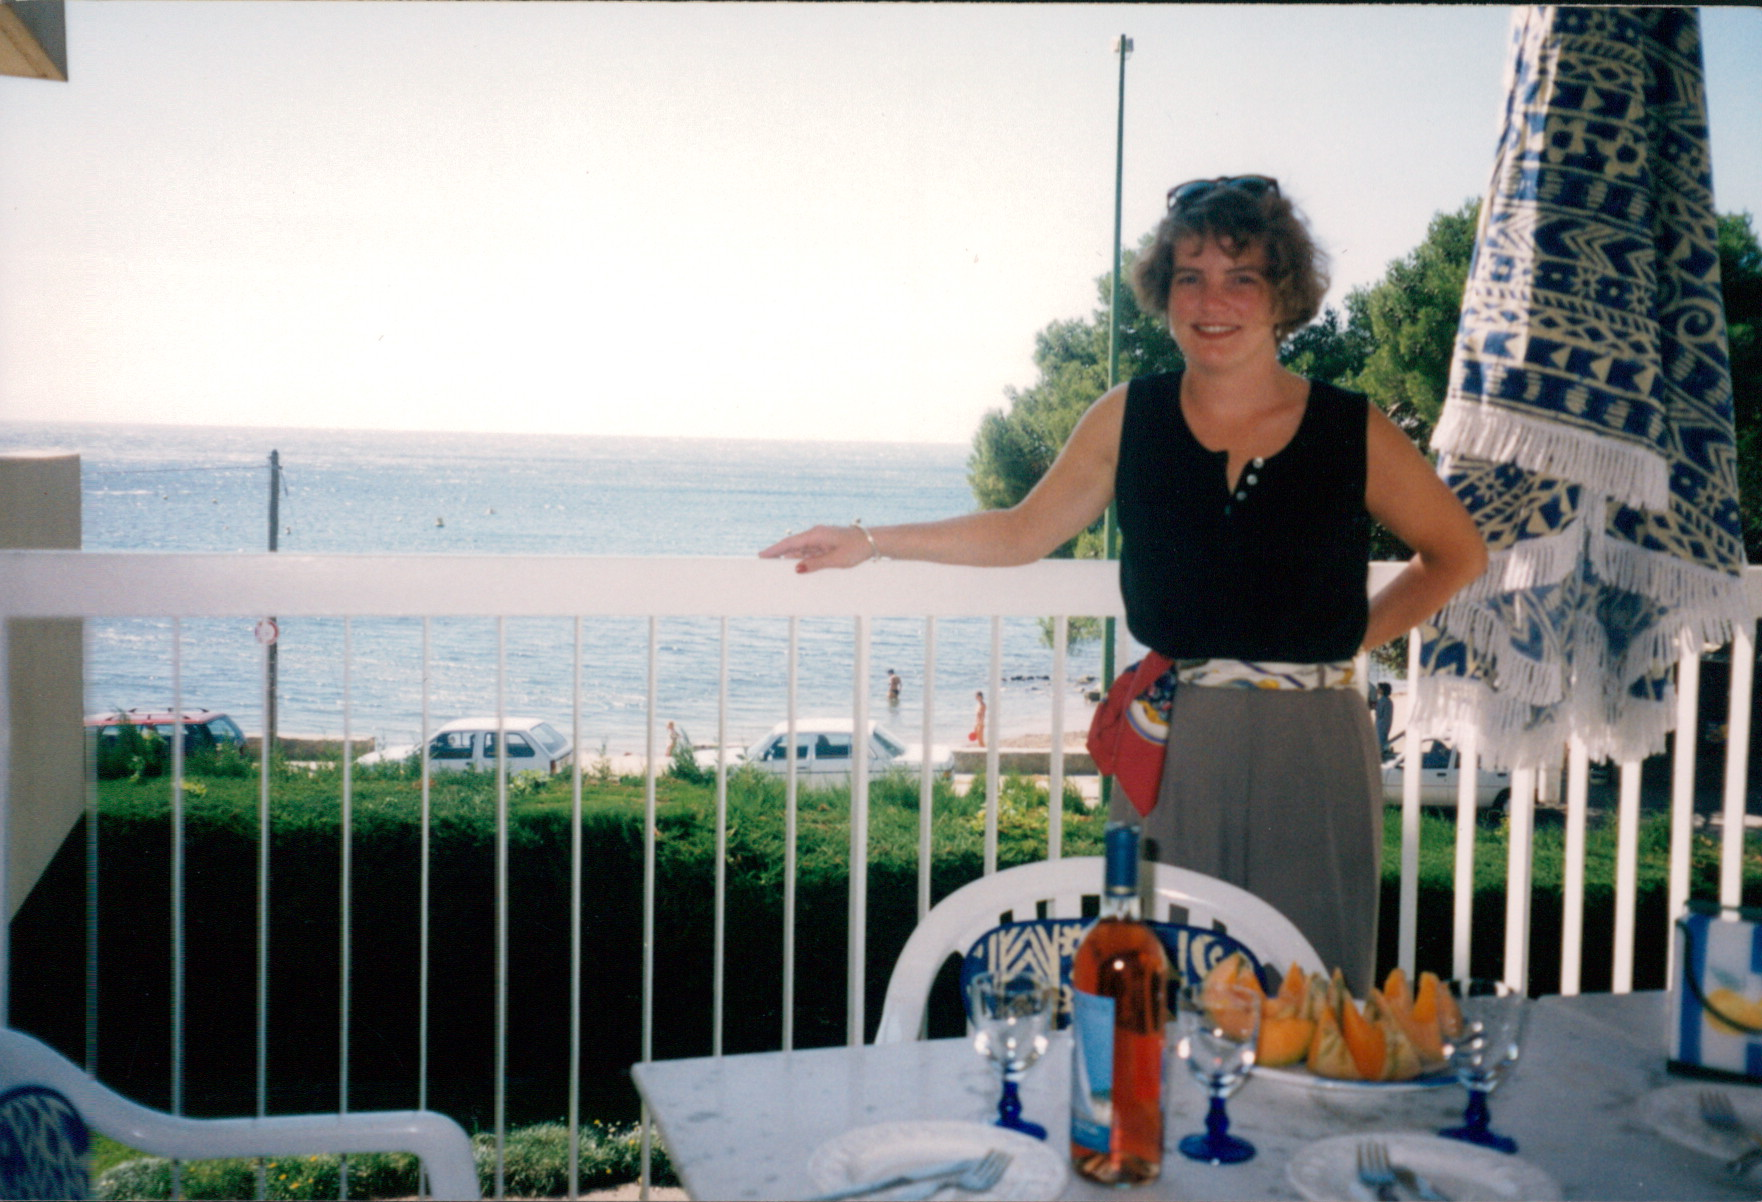 A beautiful summer day overlooking the plage at St. Raphael, France with melon and Cotes de Provence rose